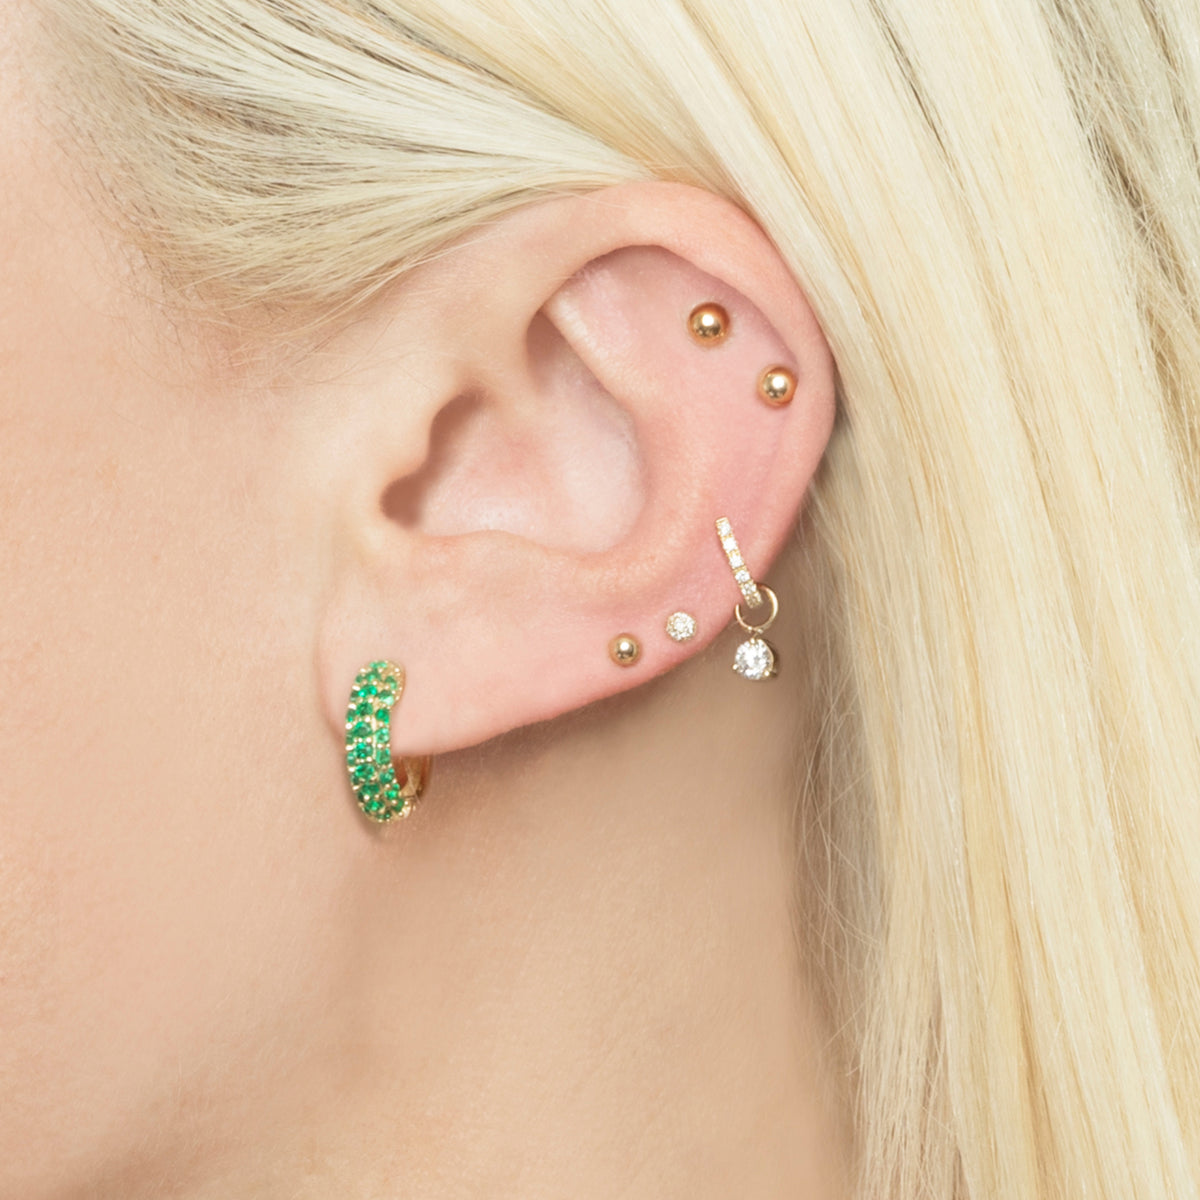 EMERALD PAVE WIDE HOOP EARRING